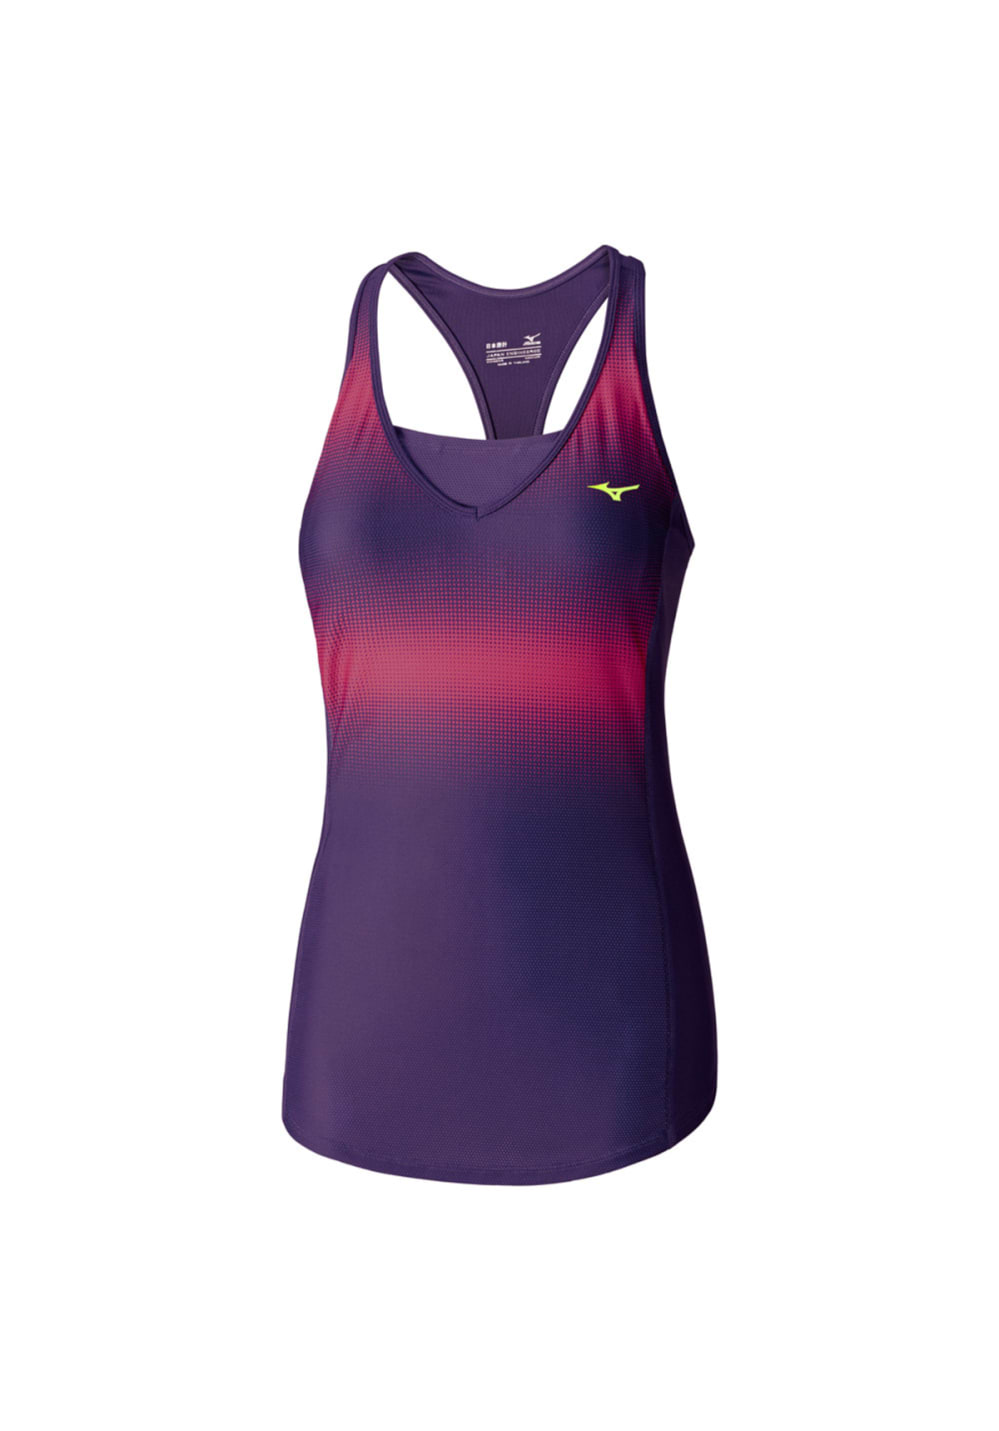 Mizuno Speed Dot Support Tank - Laufshirts für Damen - Lila, Gr. XS